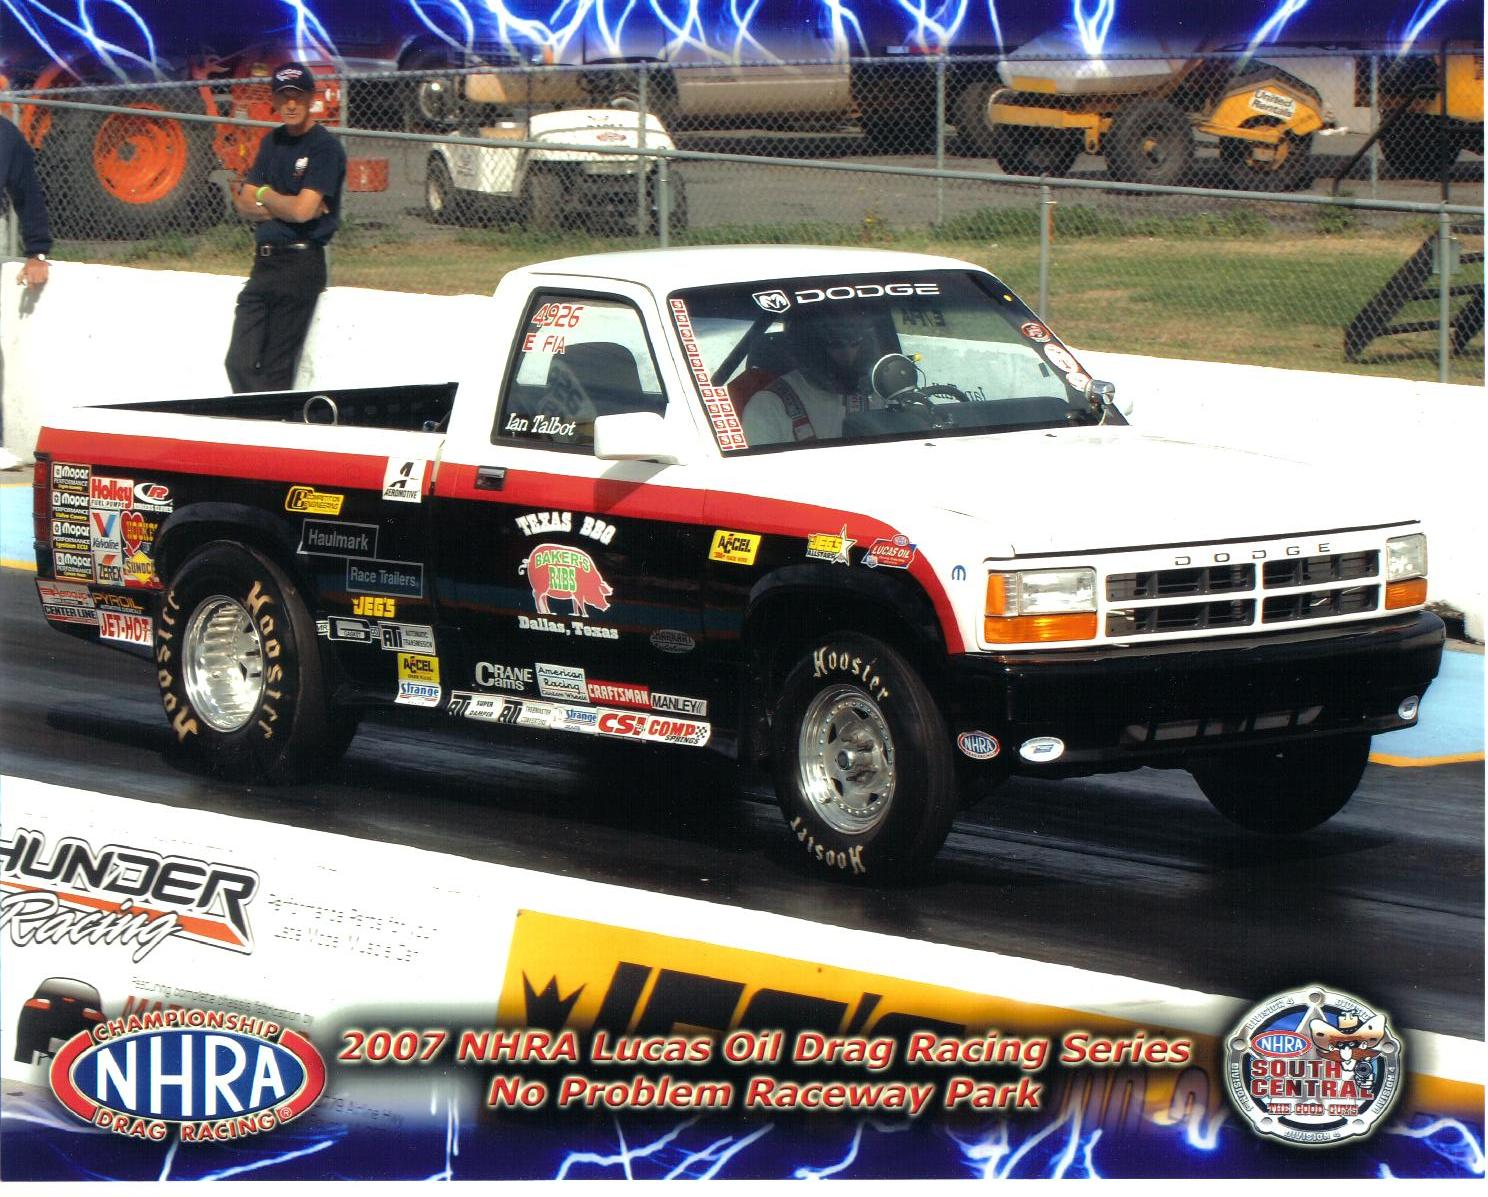 1994 dodge dakota s cab stocker nhra j fia 1 4 mile trap speeds 0 601994 dodge dakota s cab stocker nhra j fia